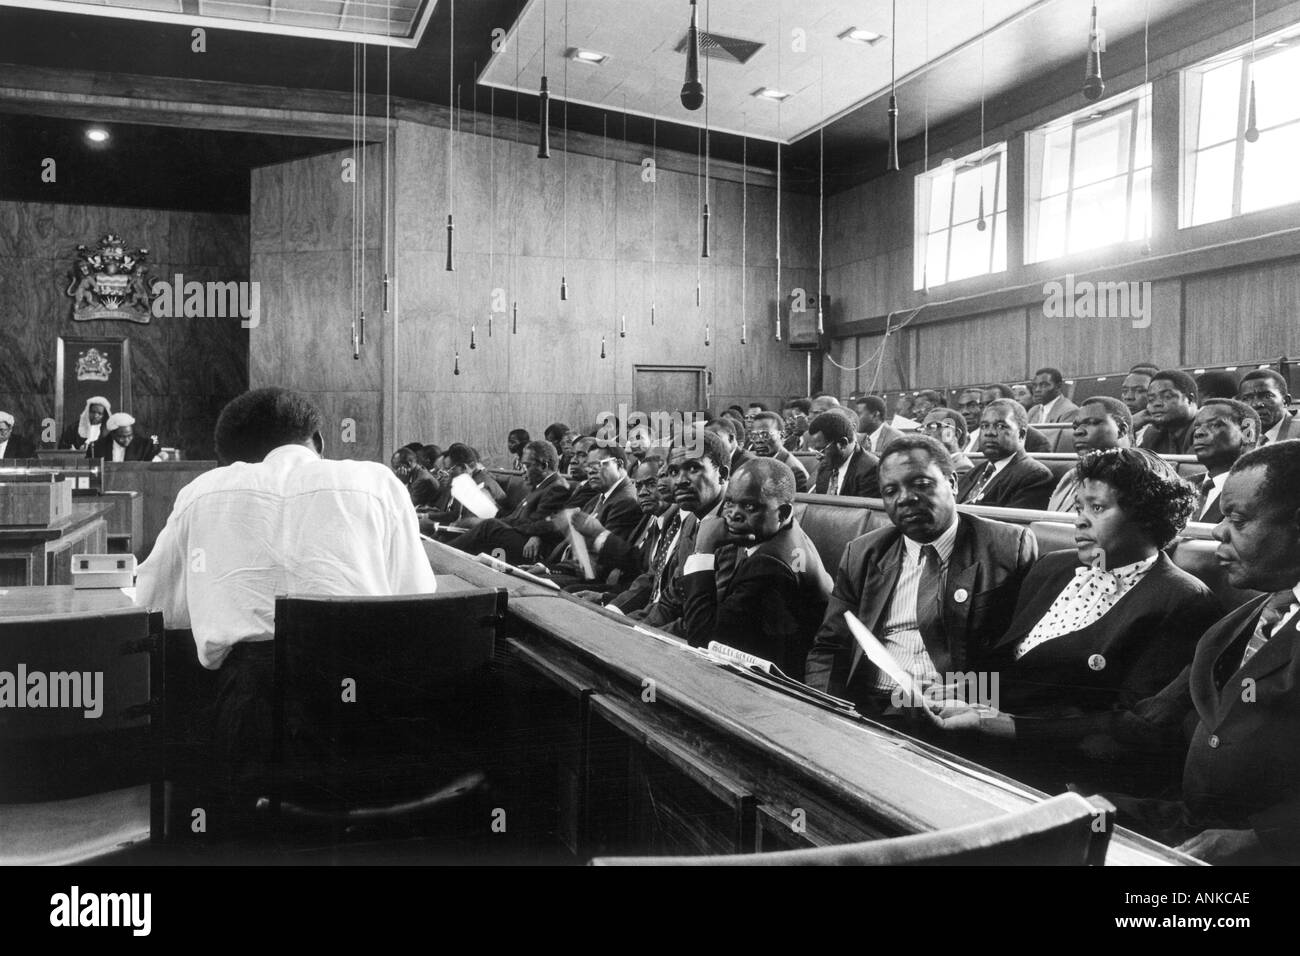 The Malawian Parliament in Zomba The picture is taken during UDF s first periode and it is the opposition MCP in the picture - Stock Image